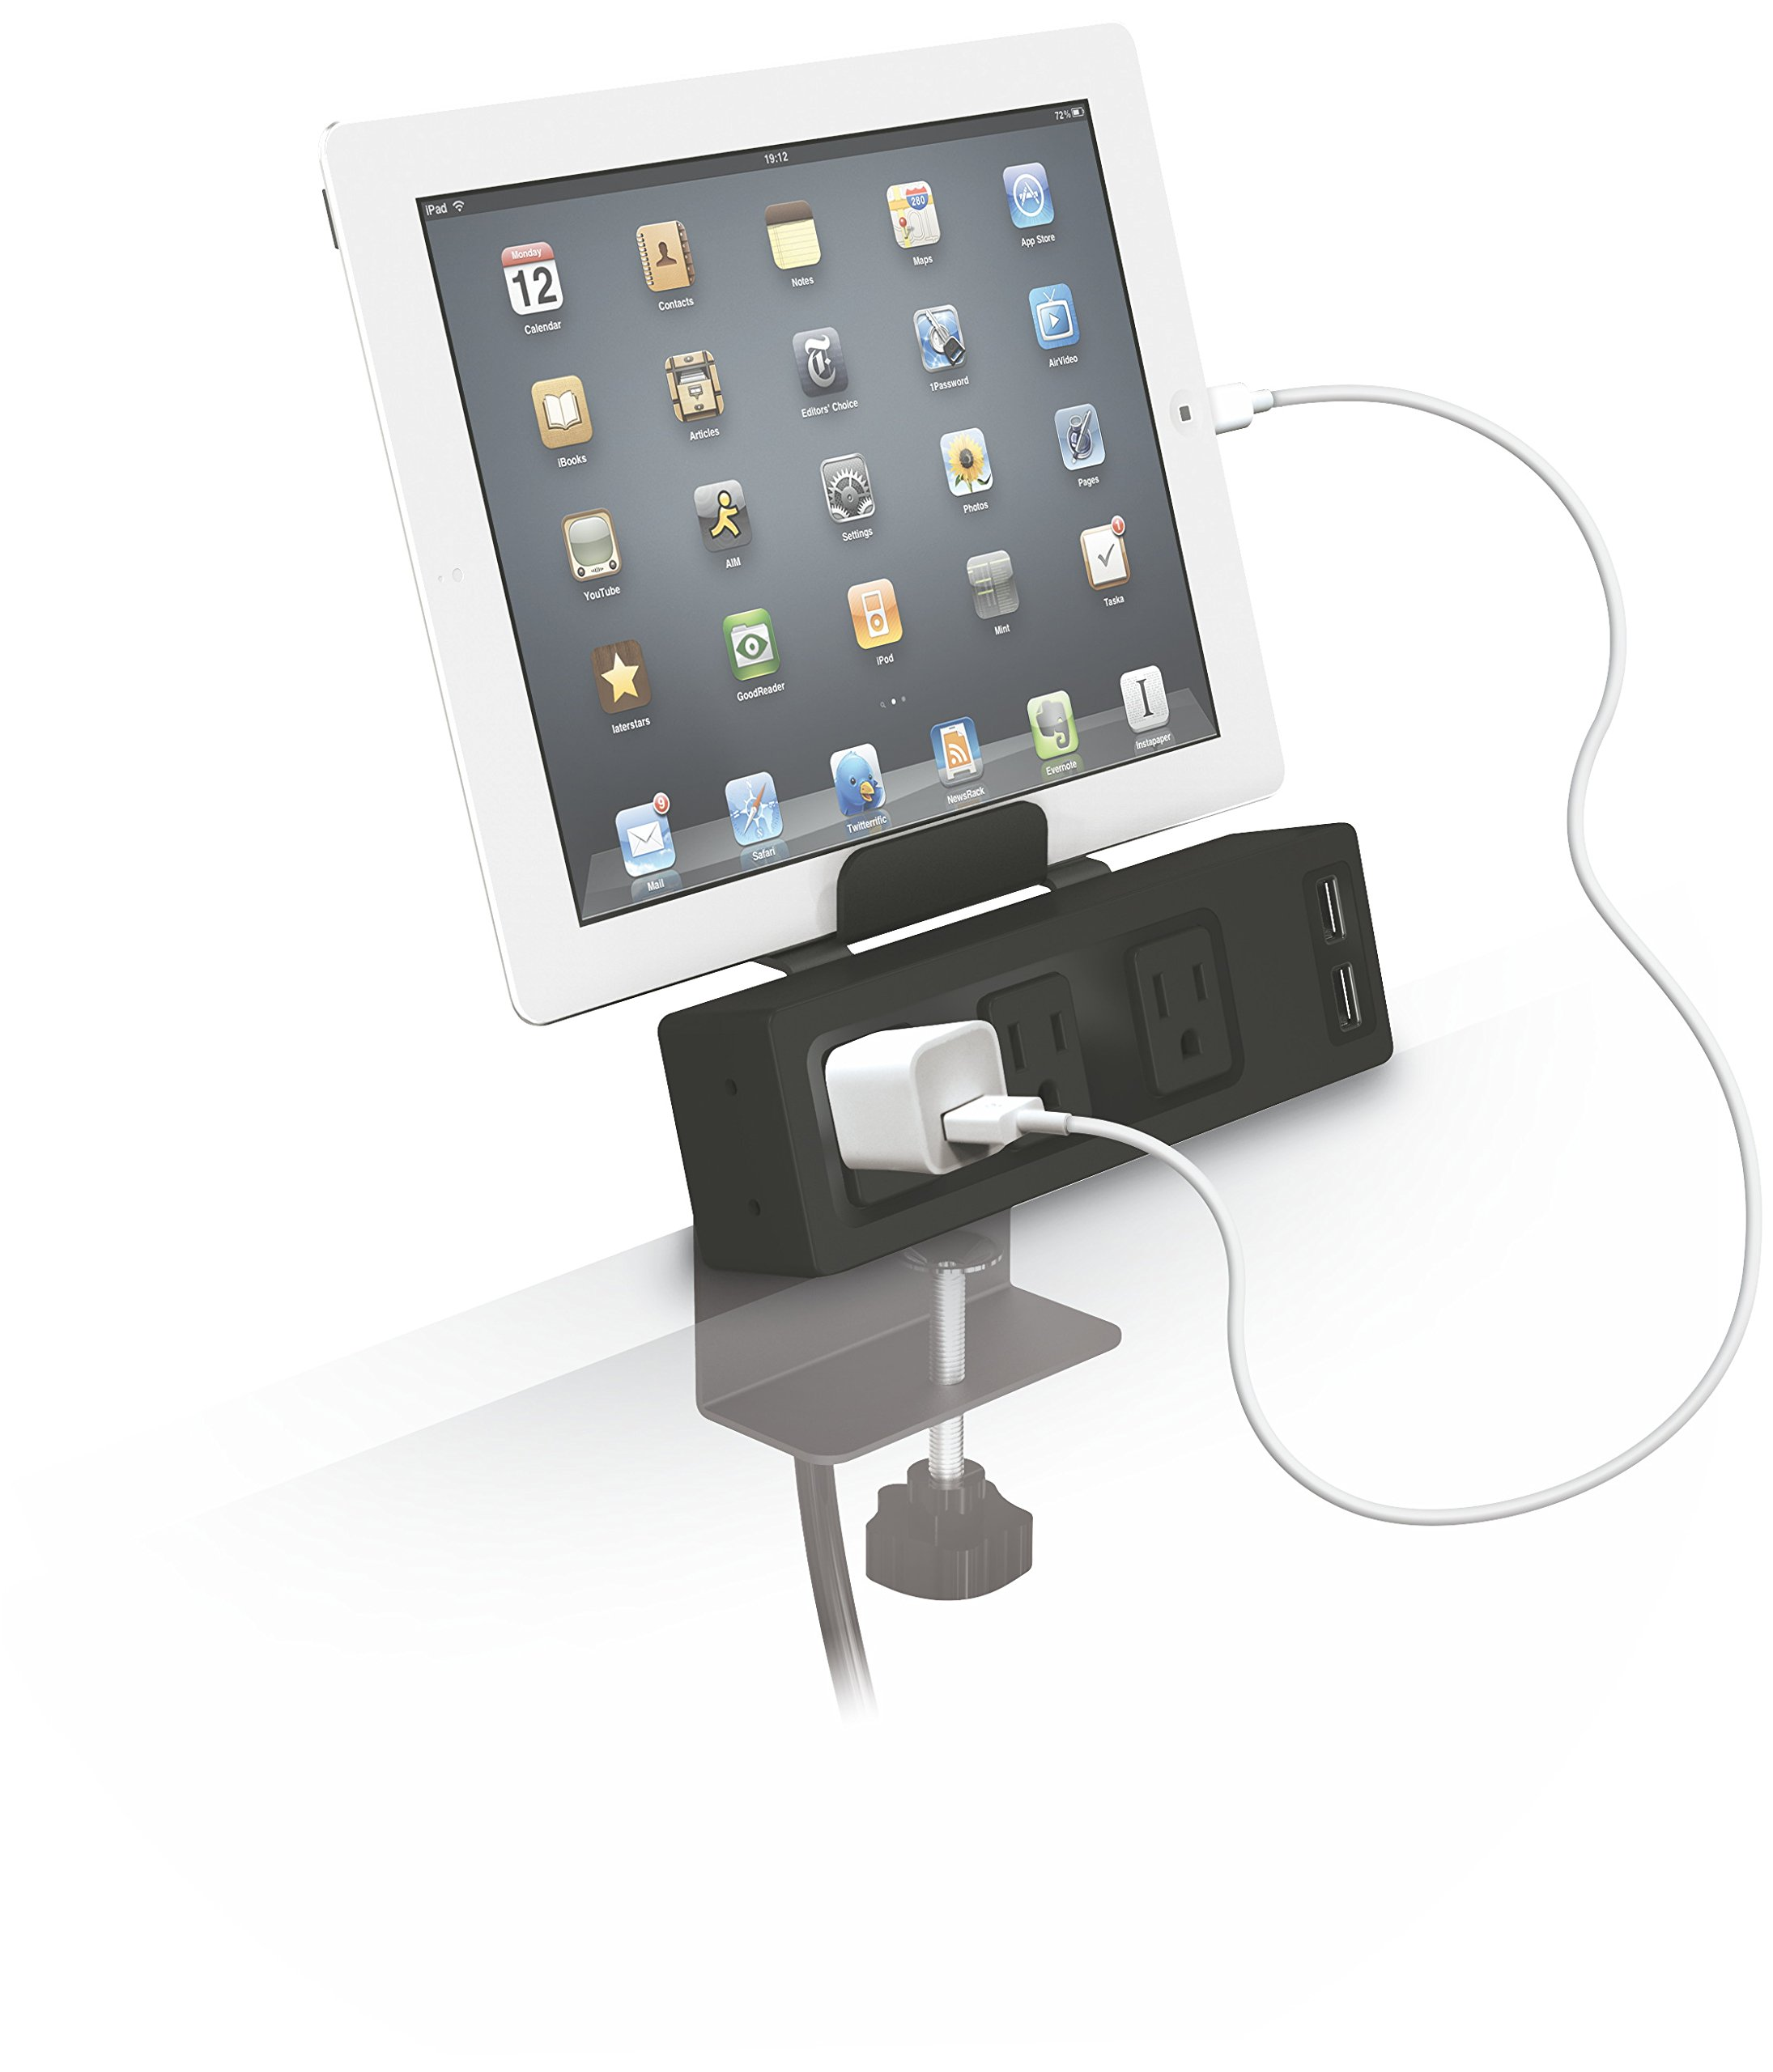 Balt Table Clamp Mount Power Outlet & USB Charger (66675) by Balt